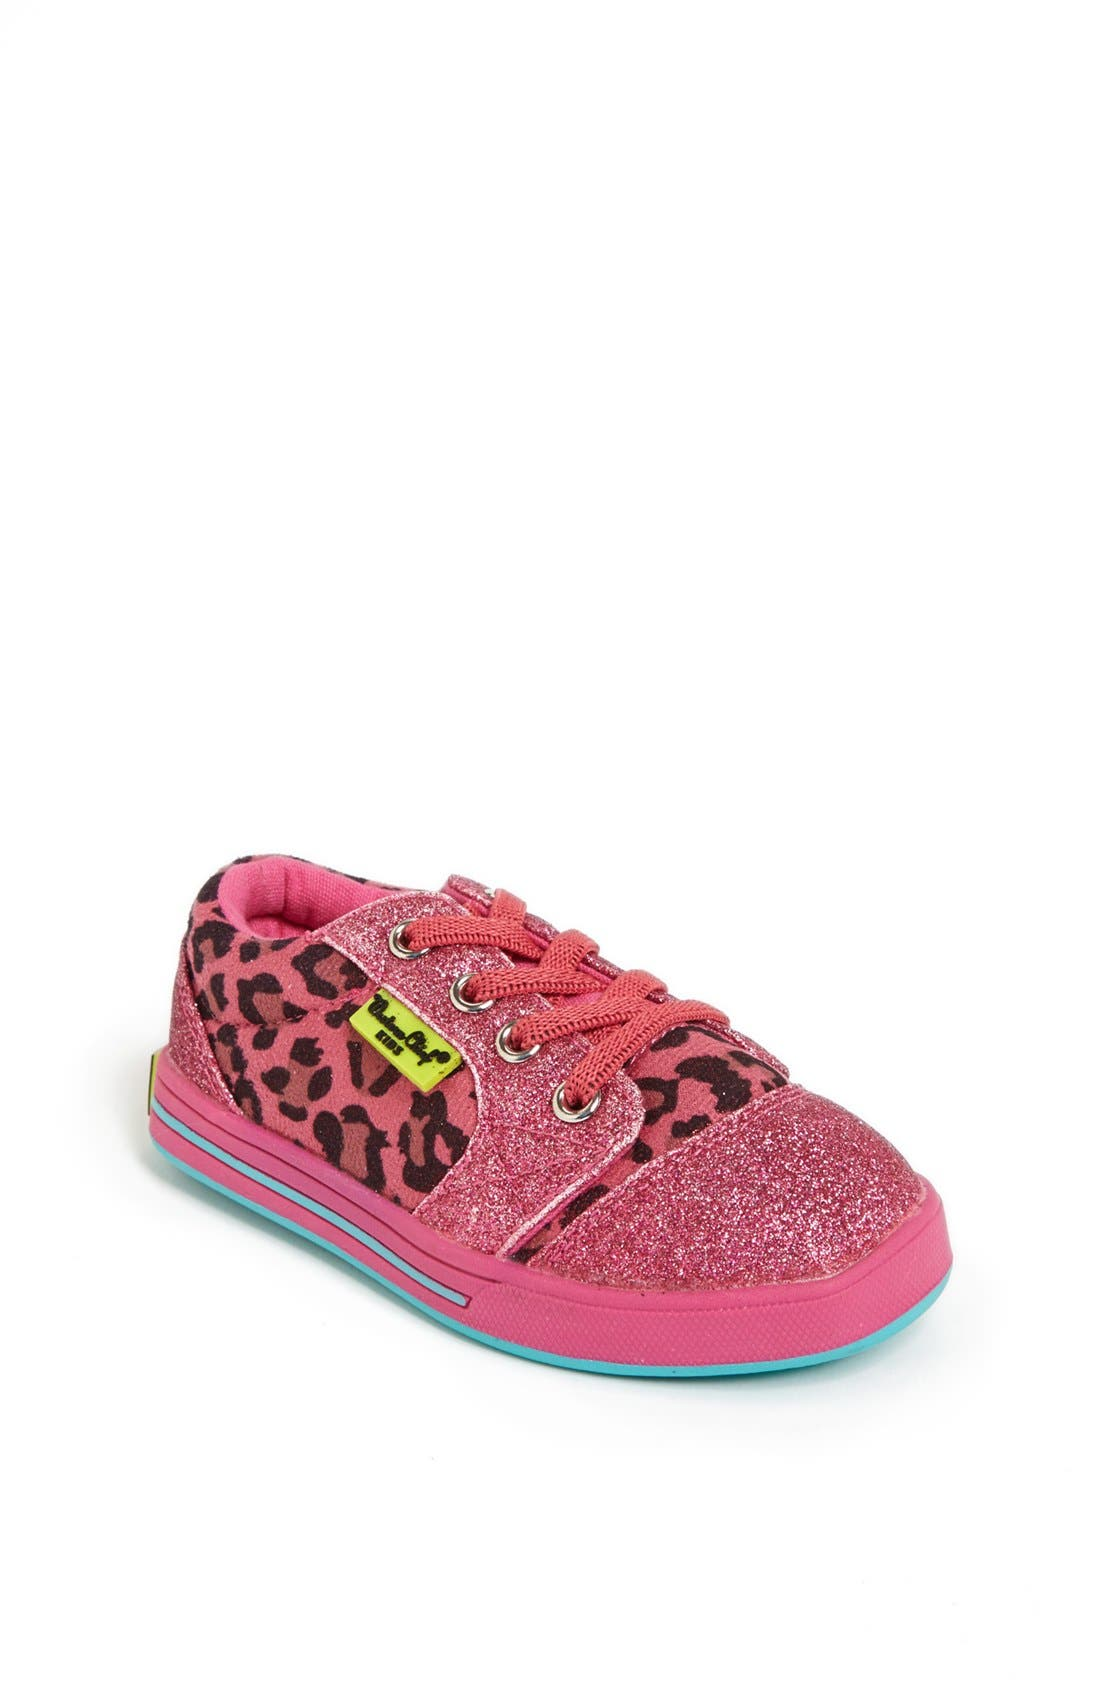 'Flashy Leopard' Sneaker,                             Main thumbnail 1, color,                             650